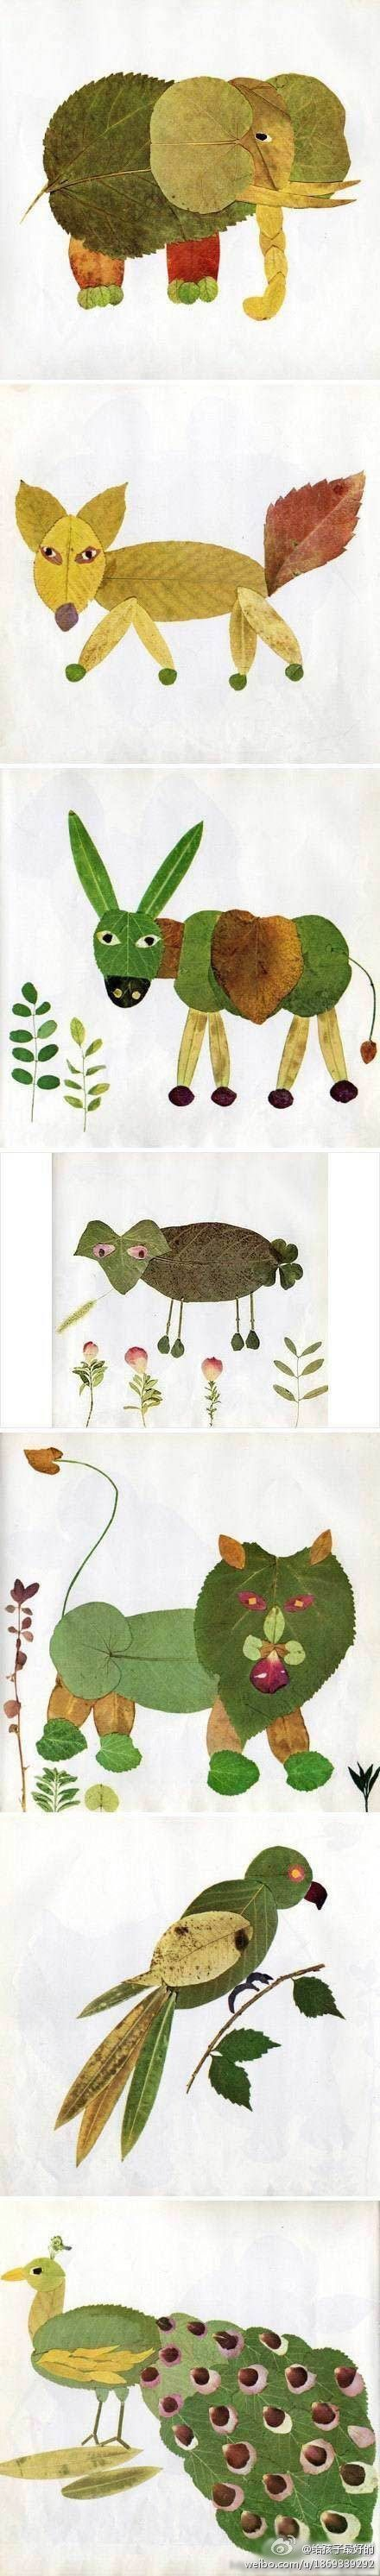 Activities with kids - Animals made from leaves